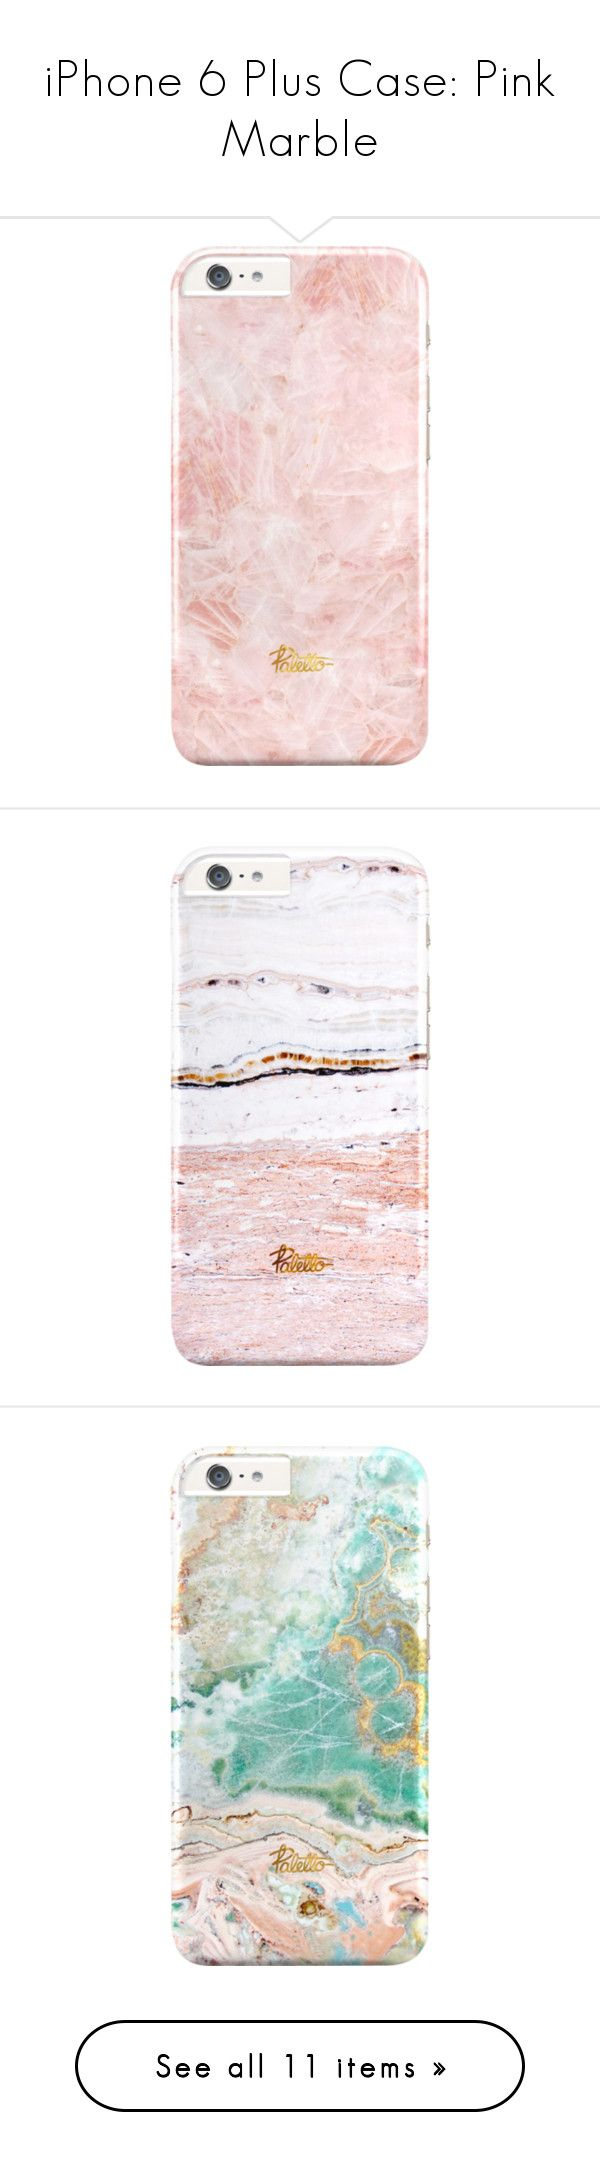 iPhone 6 Plus Case: Pink Marble by palettoshop on Polyvore featuring giftguide, iphonecase, holidays, marble, iphone6plus, women's fashion, accessories, tech accessories, phones and fillers